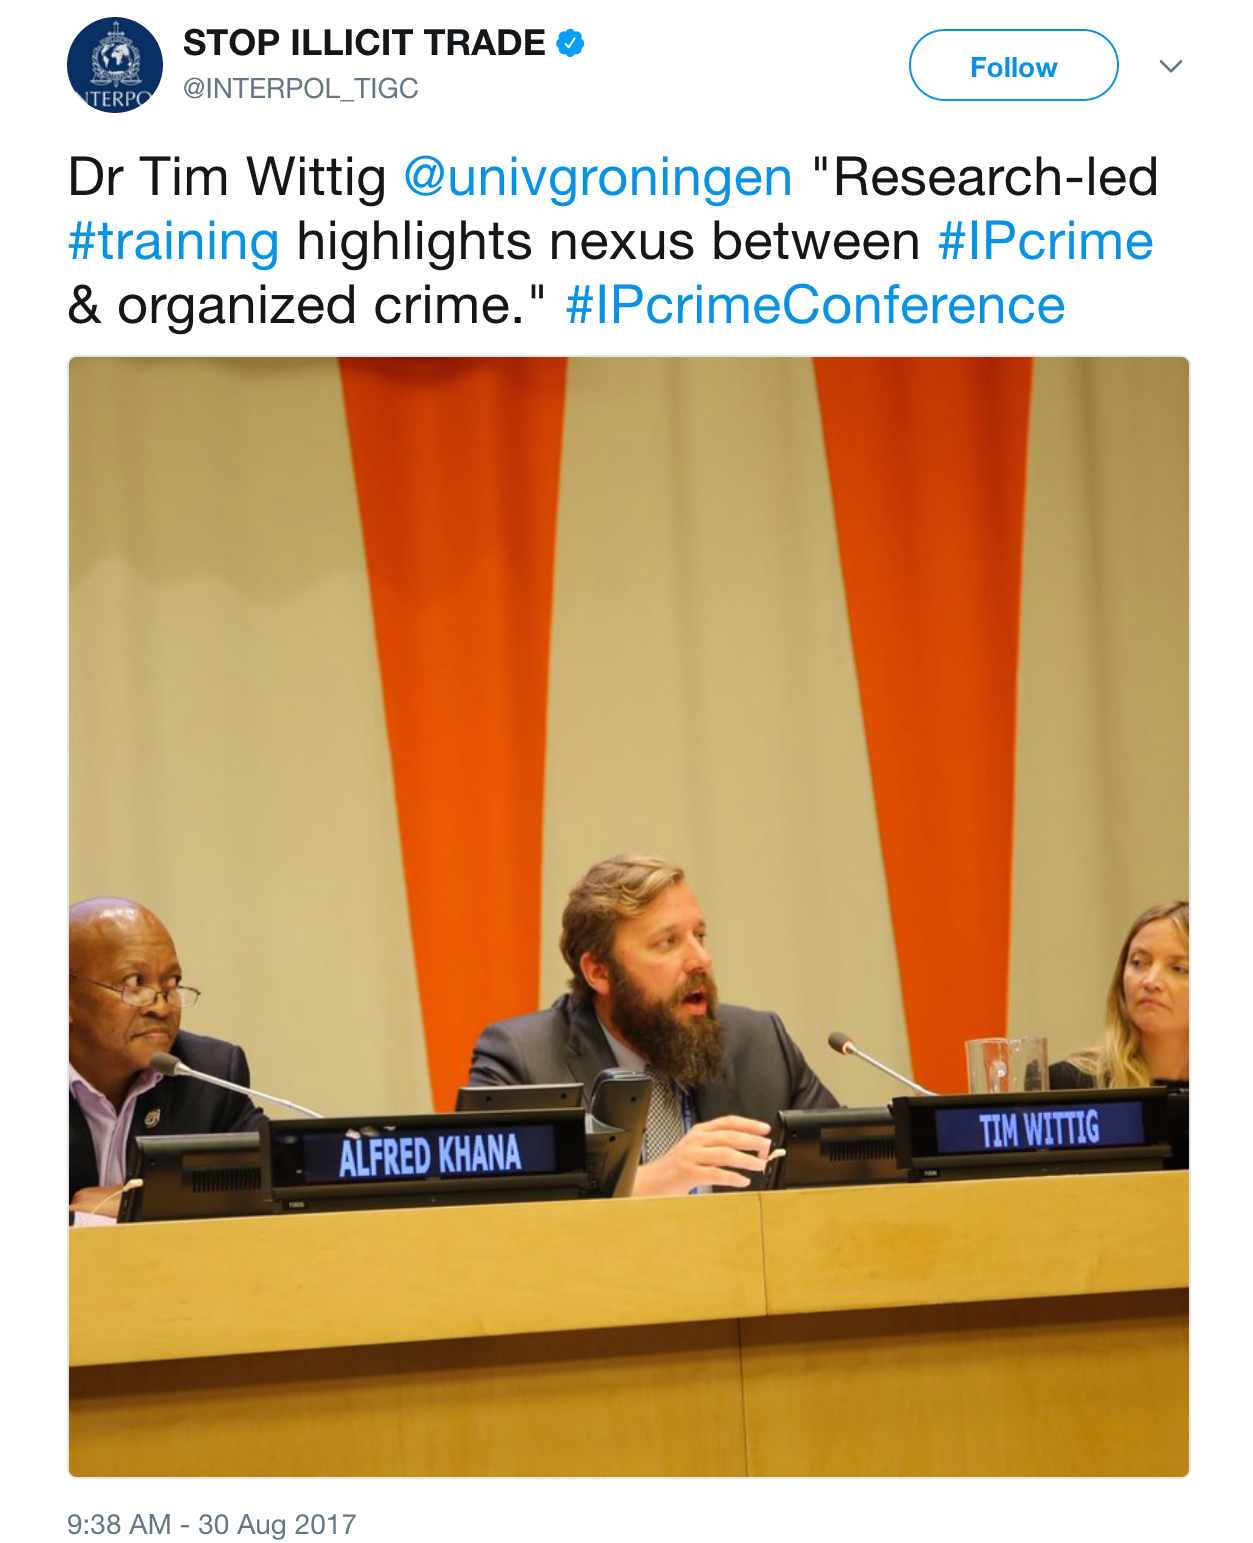 Panel at the United Nations in New York discussing Groningen's Illicit Trade Summer School as a model for research-led training.